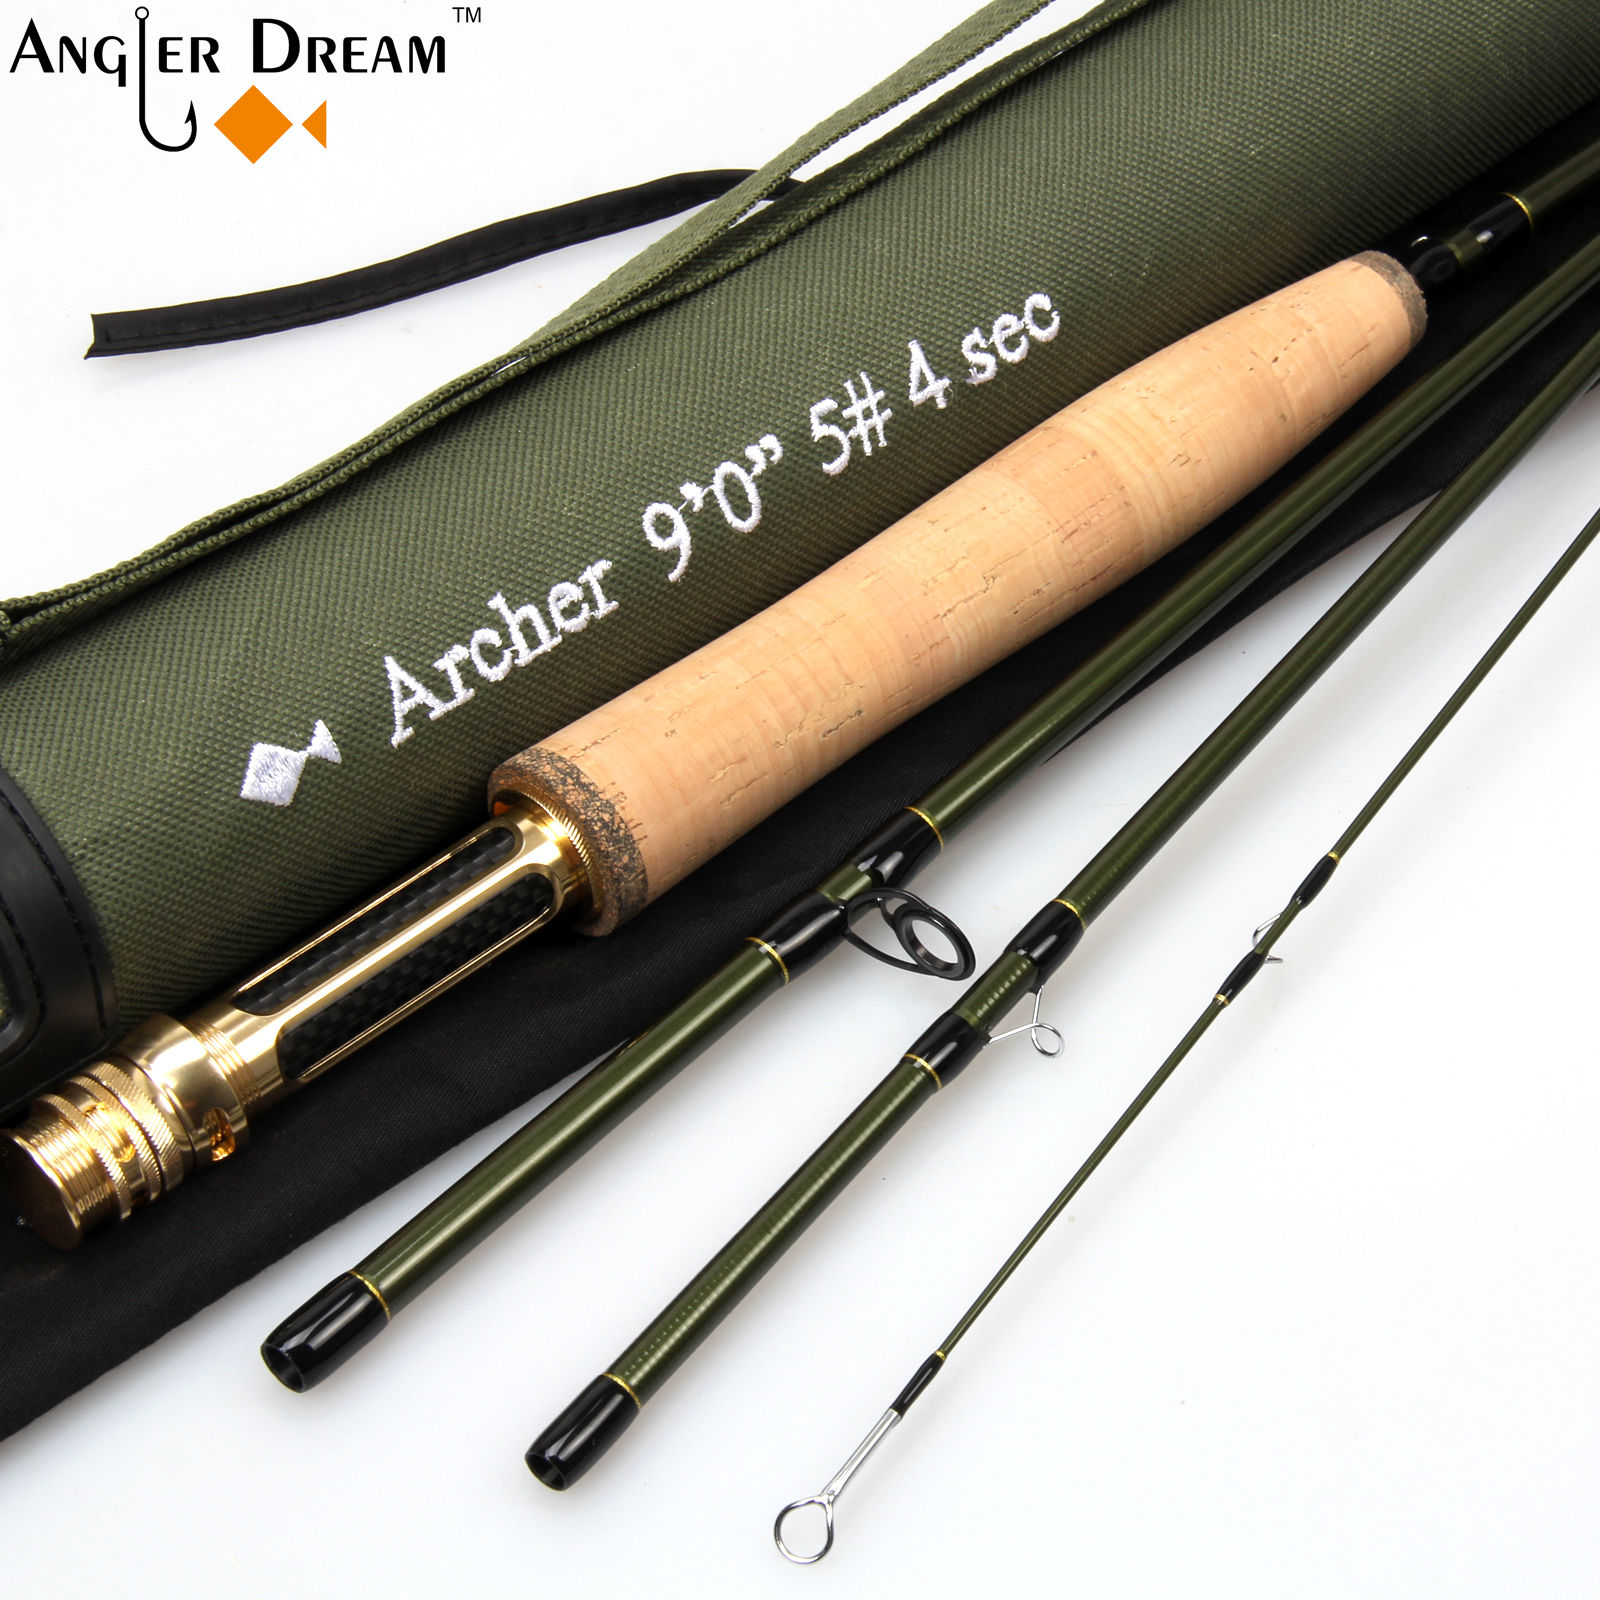 ANGLER DREAM Fishing Tool Fly fishing Rod Set 4 Section 36T Carbon Fiber/Graphite IM10 For Stream Fly Rod Reel Fly Fishing Flies enlarge